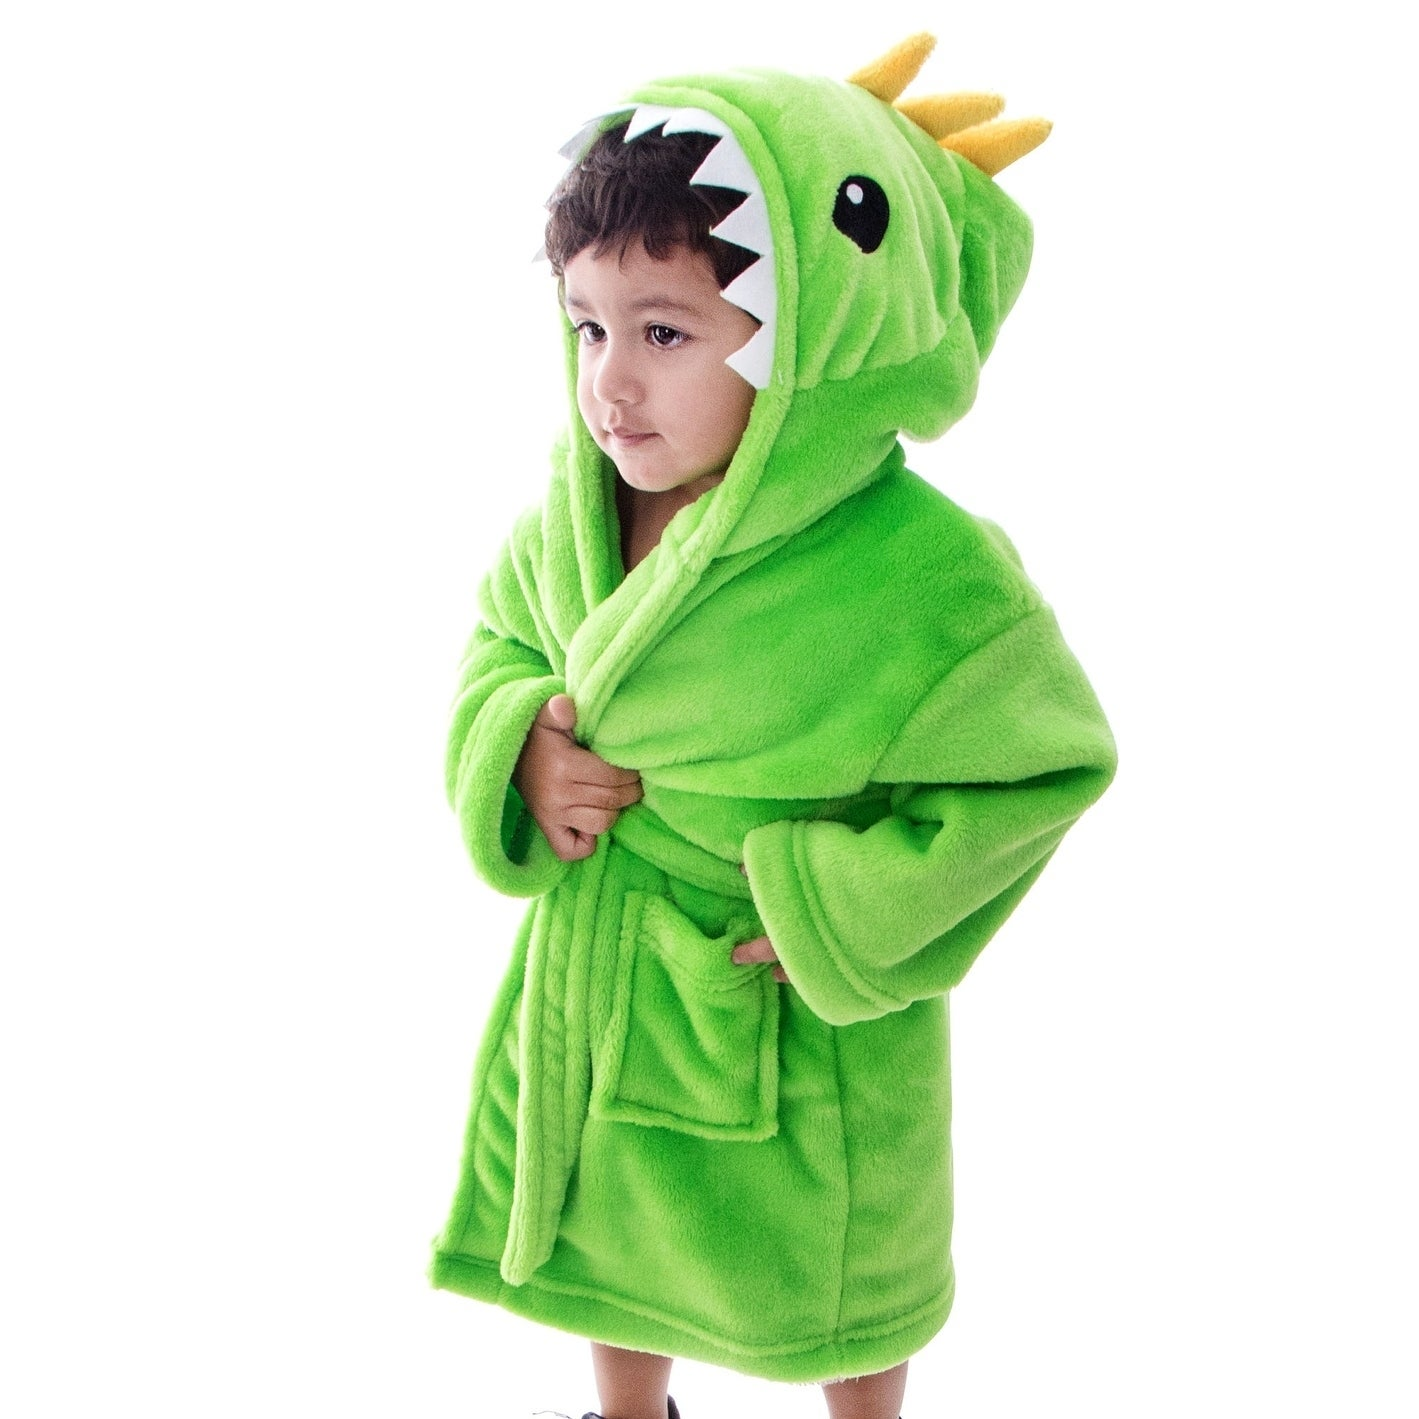 1de2ca4572 Shop Arctic Paw Animal Adventures Plush Soft Hooded Terry Bathrobe -  Dinosaur - On Sale - Free Shipping Today - Overstock - 18128822